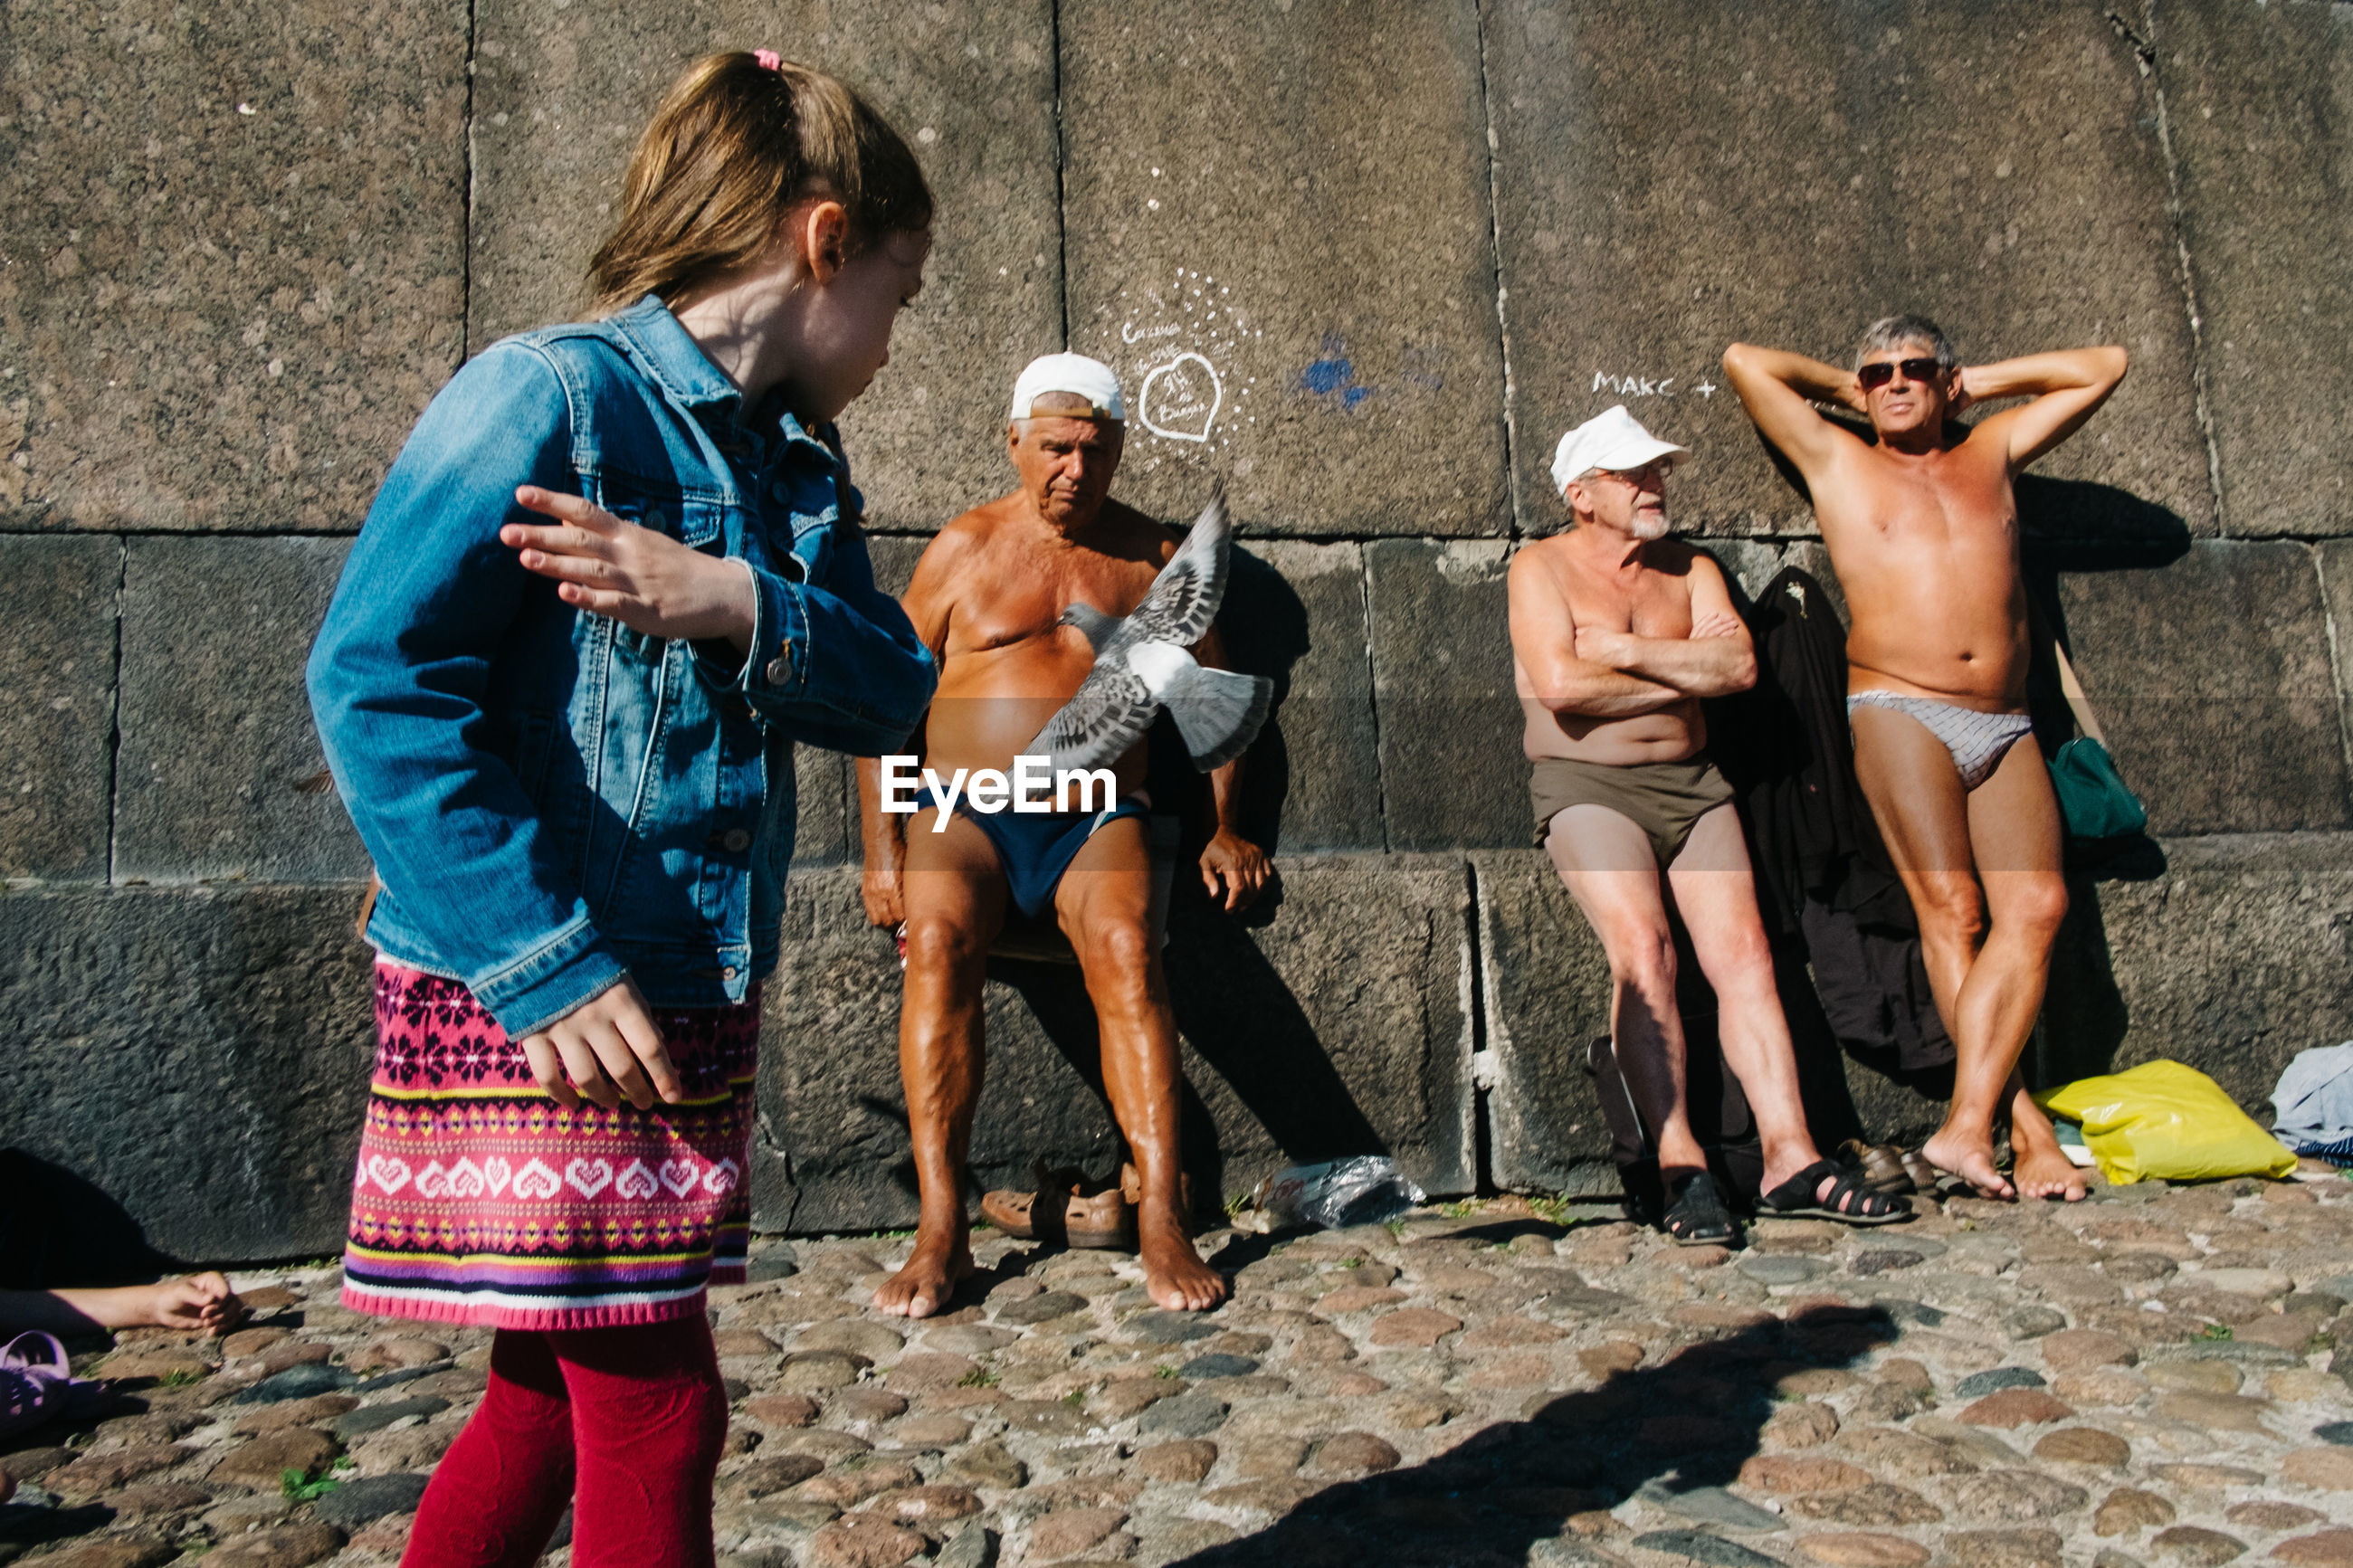 full length, standing, leisure activity, outdoors, shirtless, holding, adult, group of people, sitting, day, people, men, young adult, blond hair, adults only, city